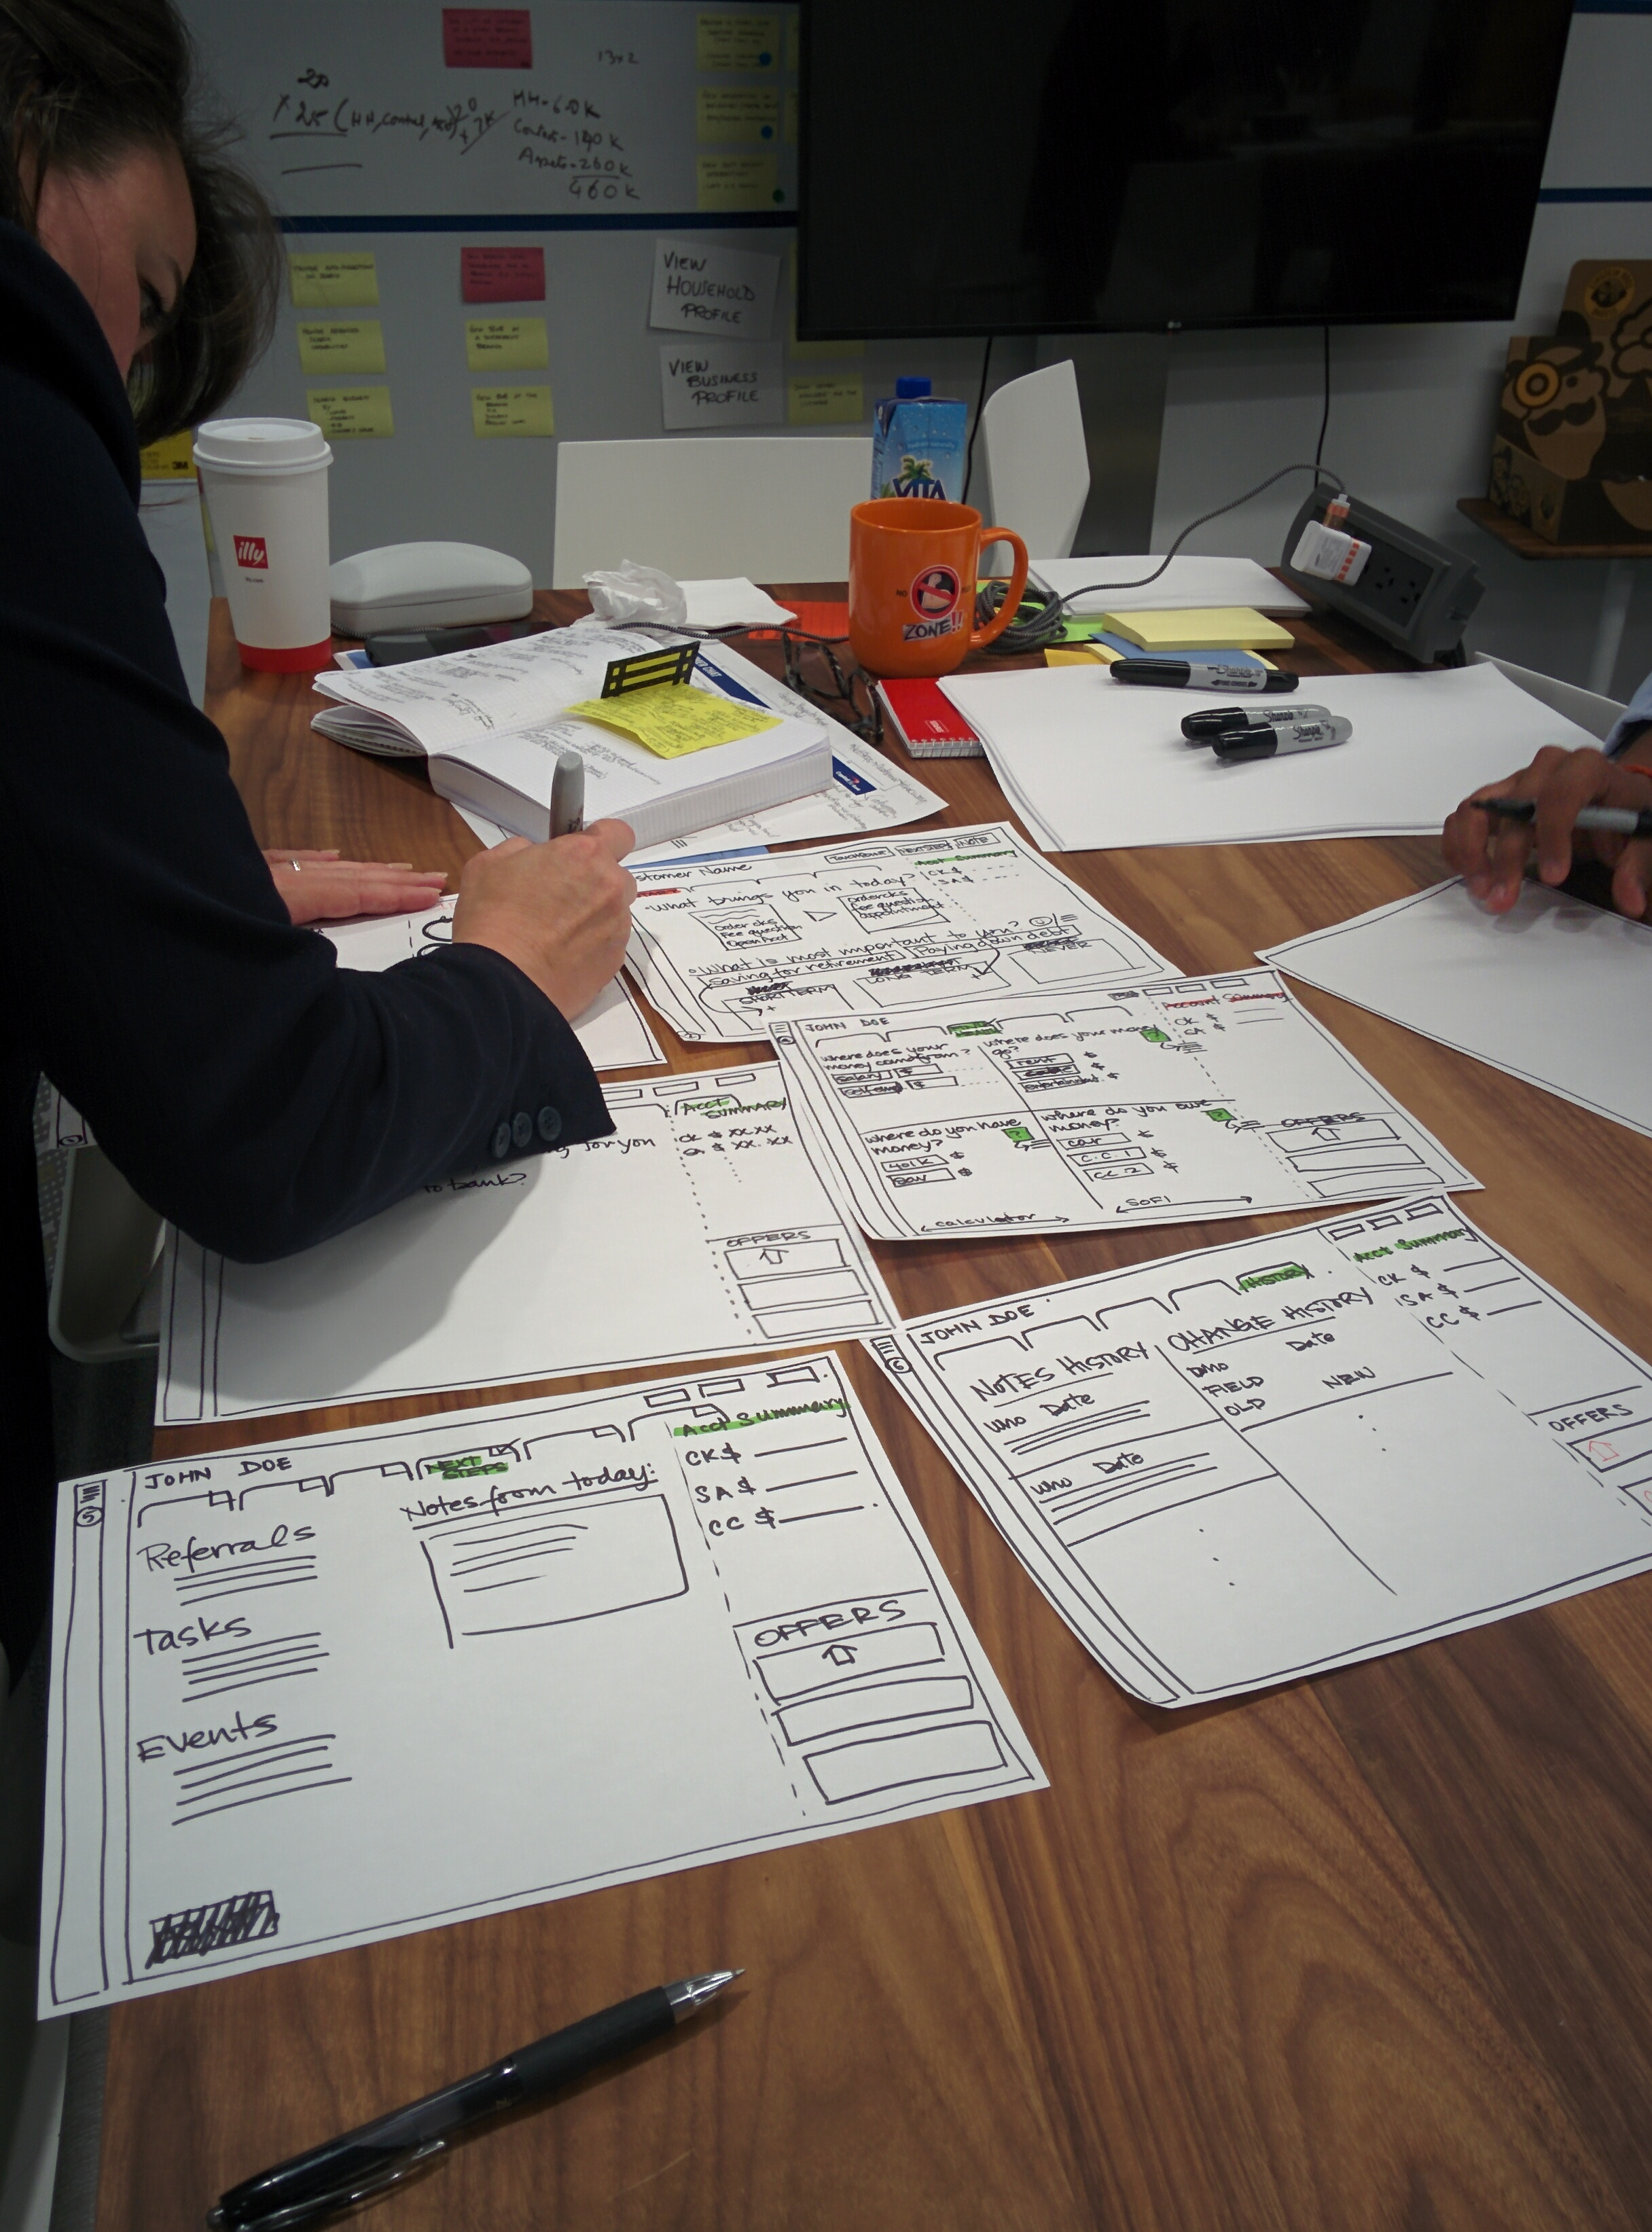 Design Thinking and prototype testing